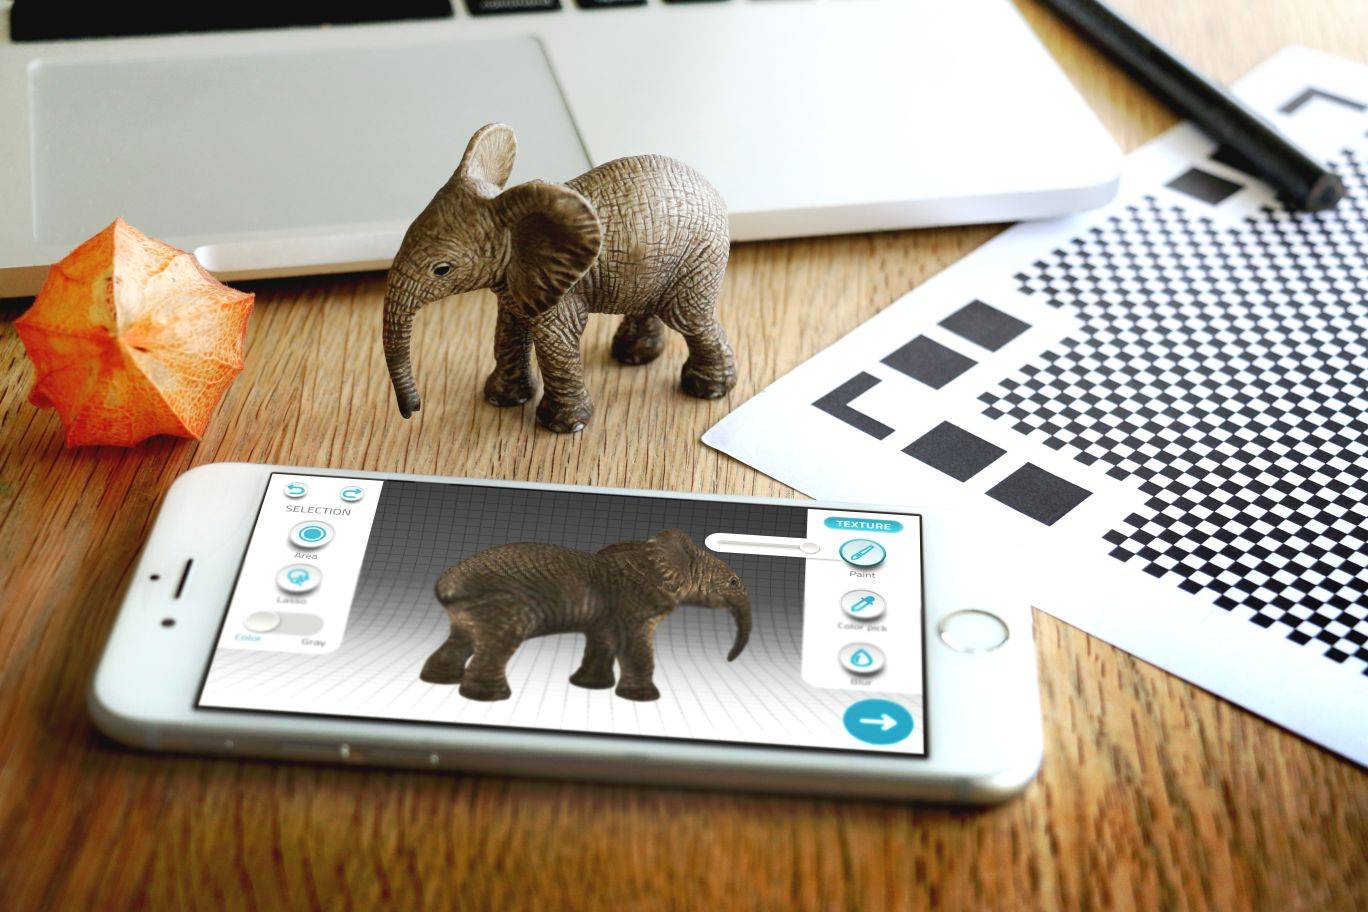 Qlone 3D scanning app now available for Android - Android